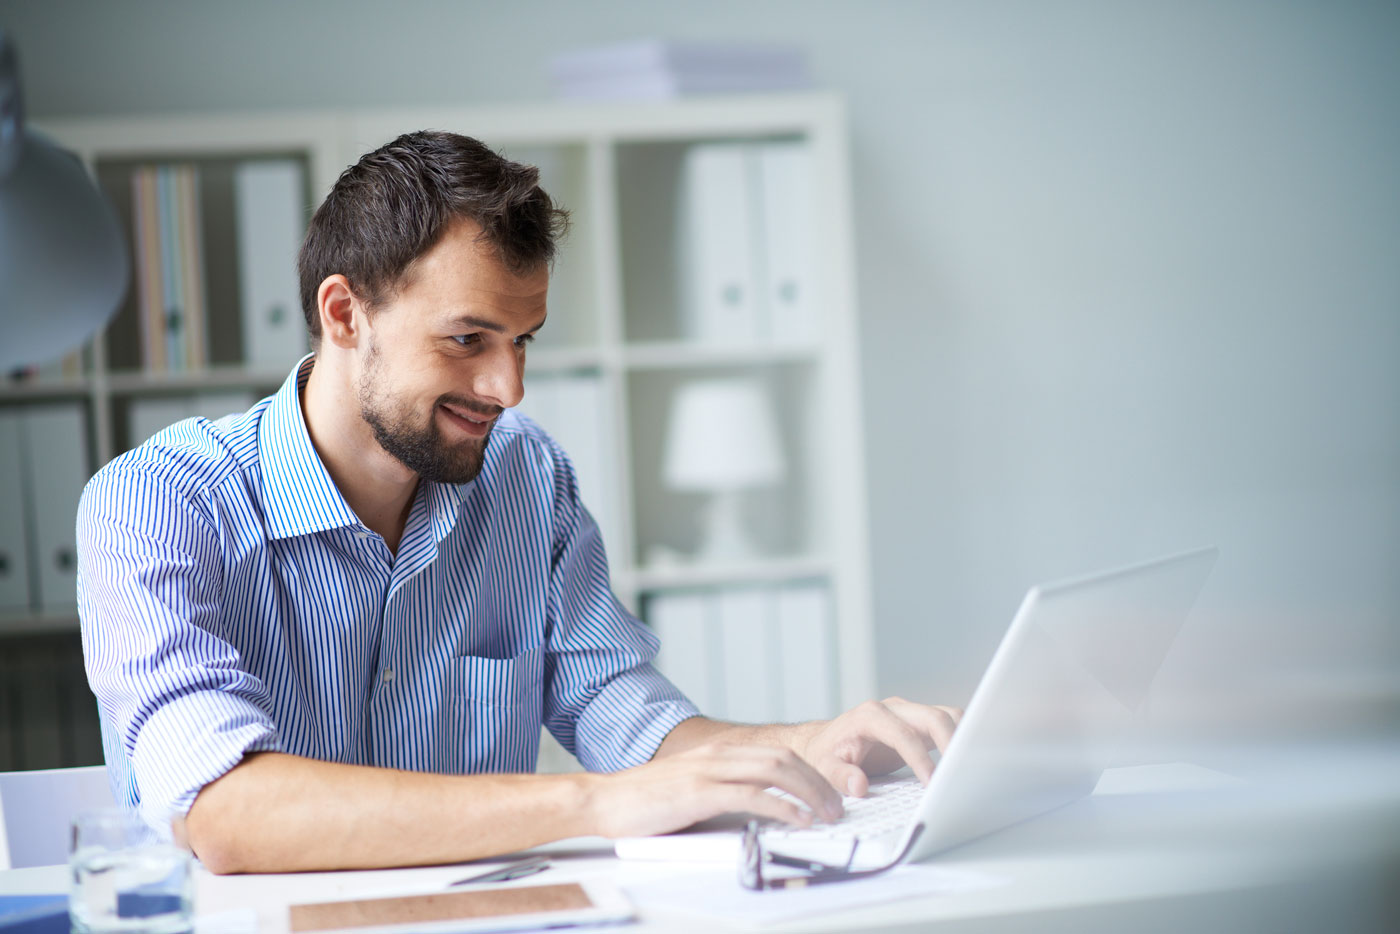 spanish-to-english-translation-human-translation-services-man-laptop-smiling-typing-sitting-at-desk